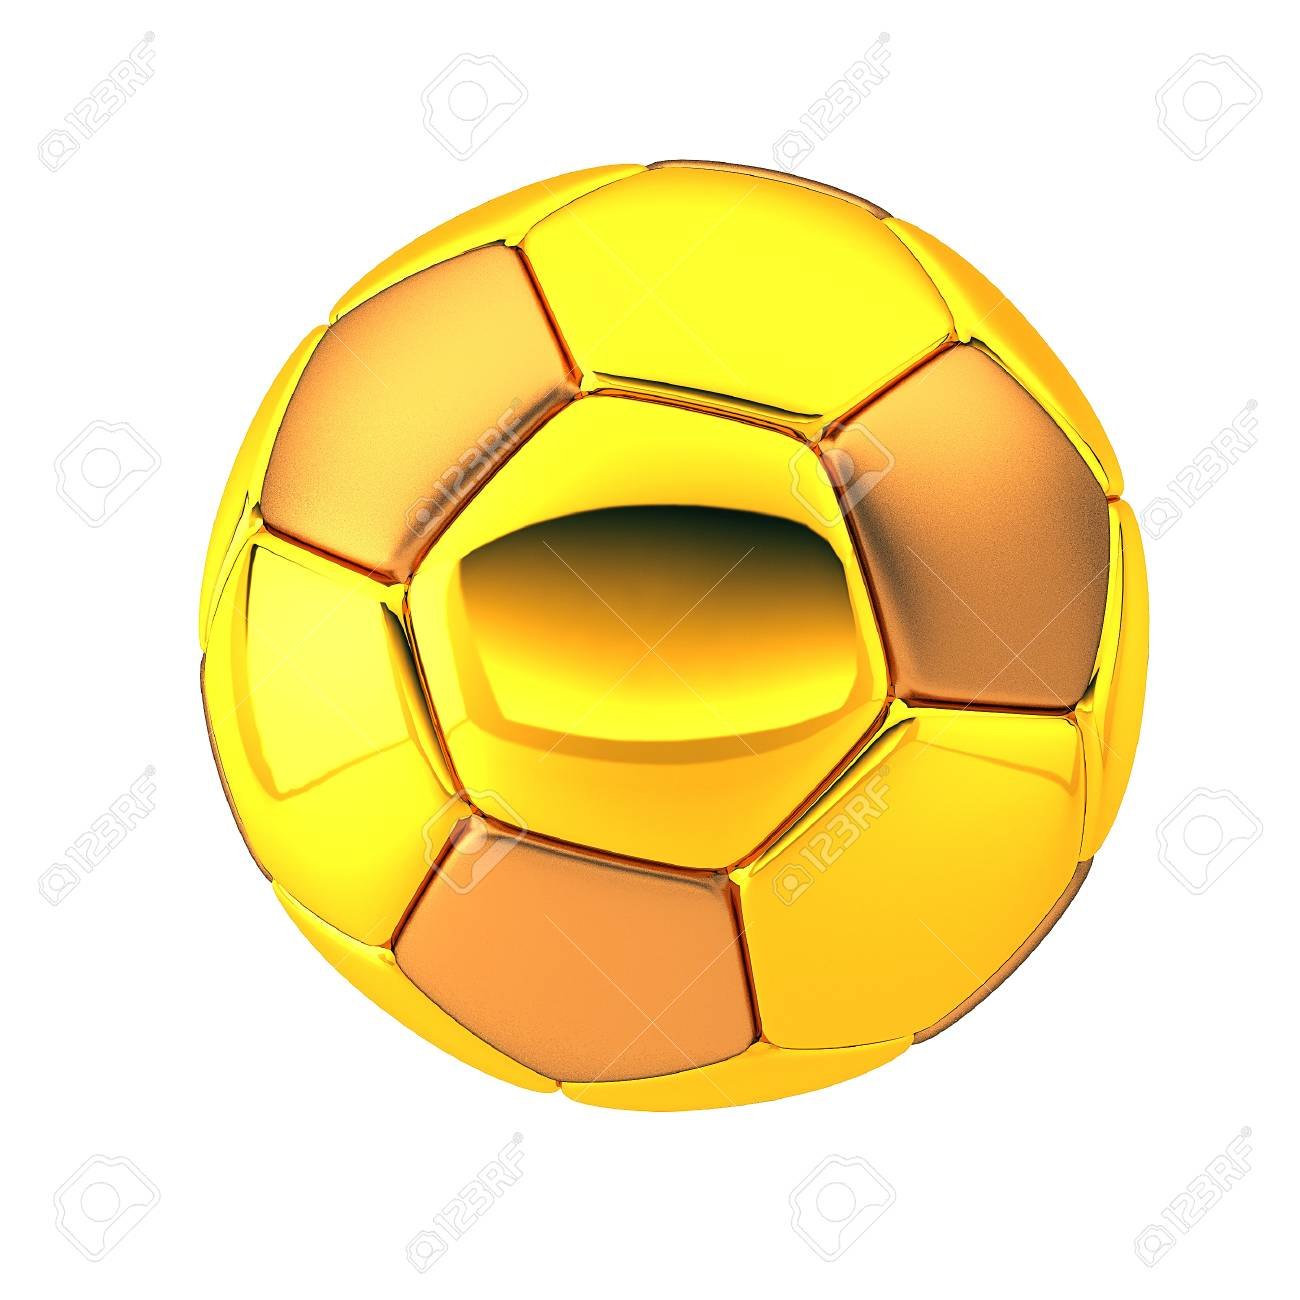 2ad9f0310 3D Illustration Of Golden Football And Soccer Ball. Patches are made from  the Gold material